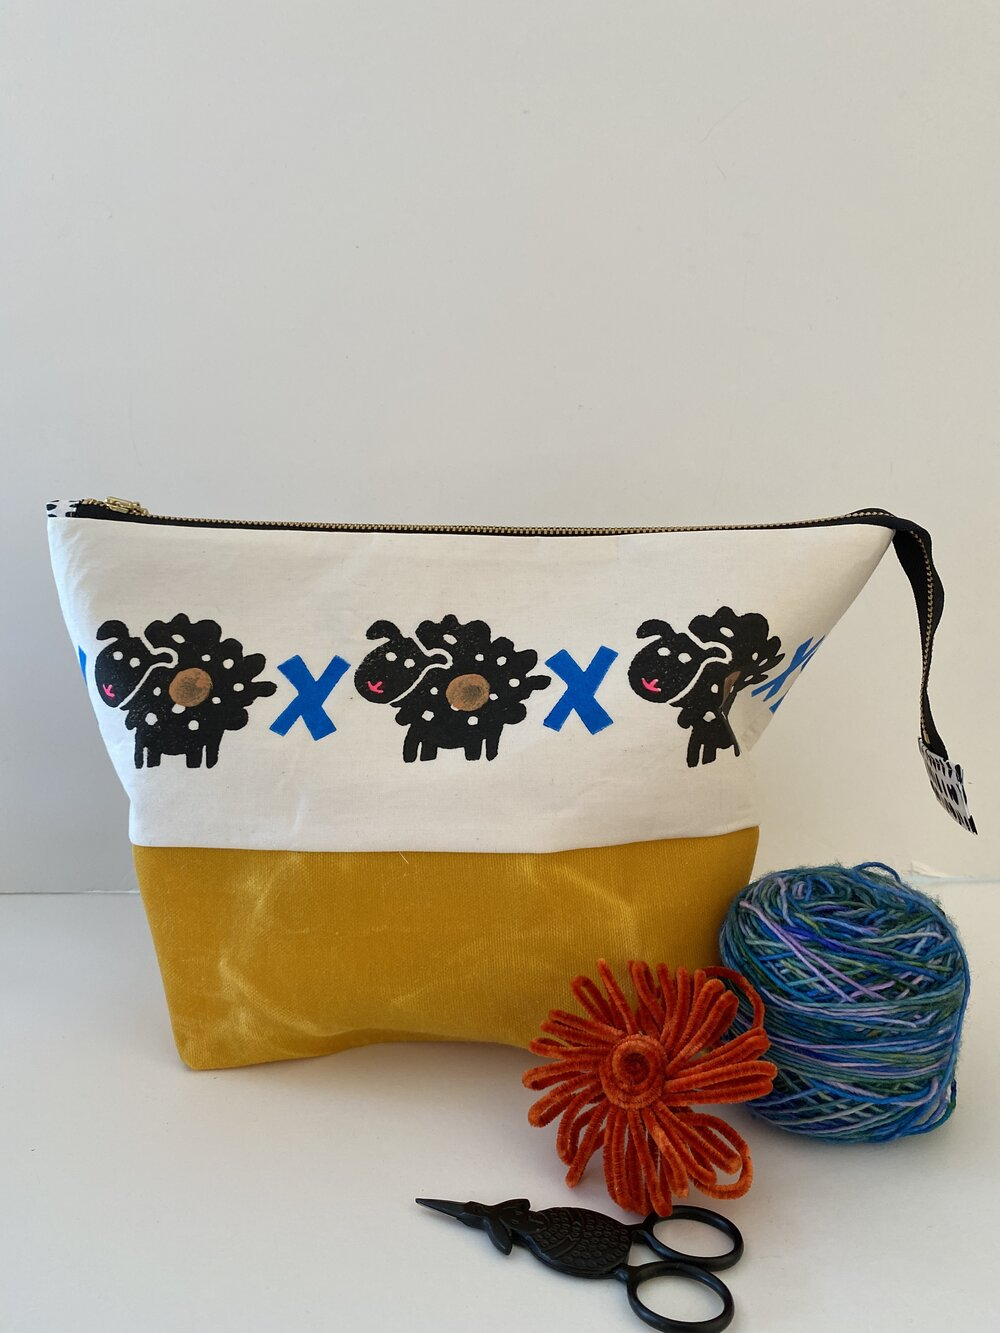 Zipper project bag - L - Six sheepies and eight crosses